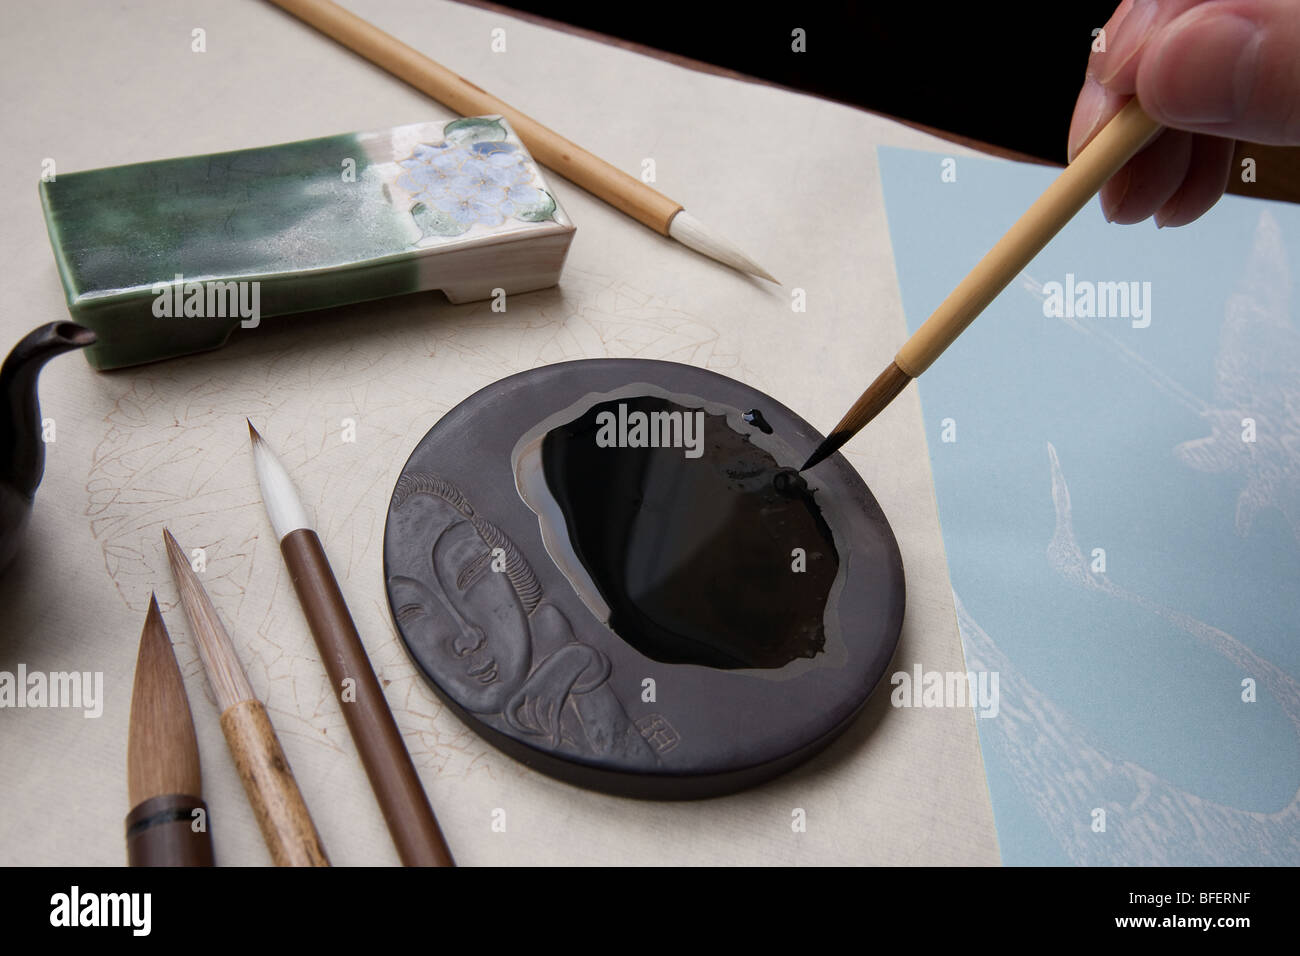 calligraphy painting brushes, inks, and stones. - Stock Image